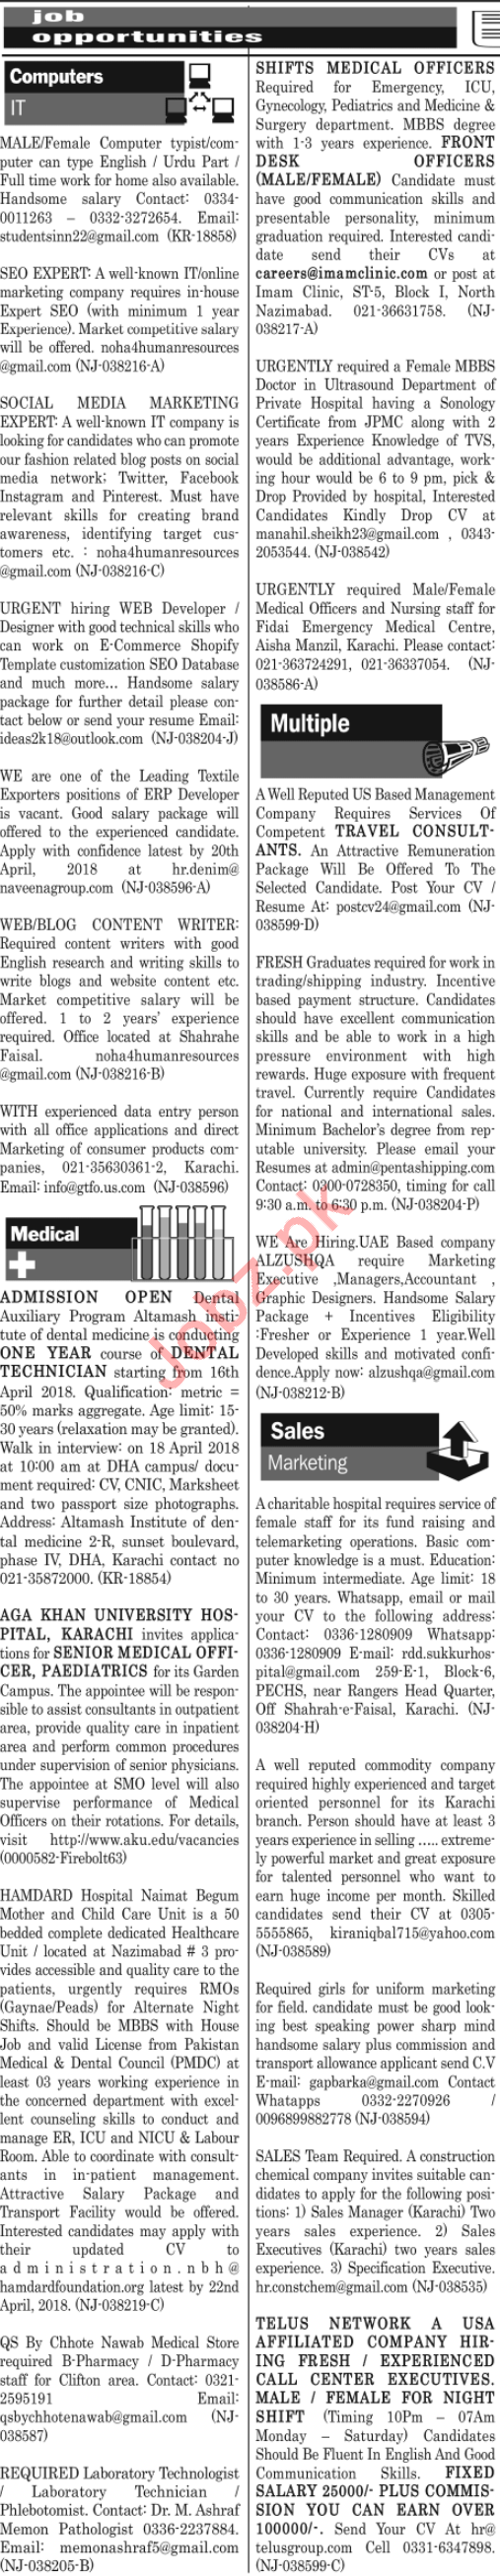 Jang News Paper Urdu Karachi Today Jobs Daily Jang Newspaper